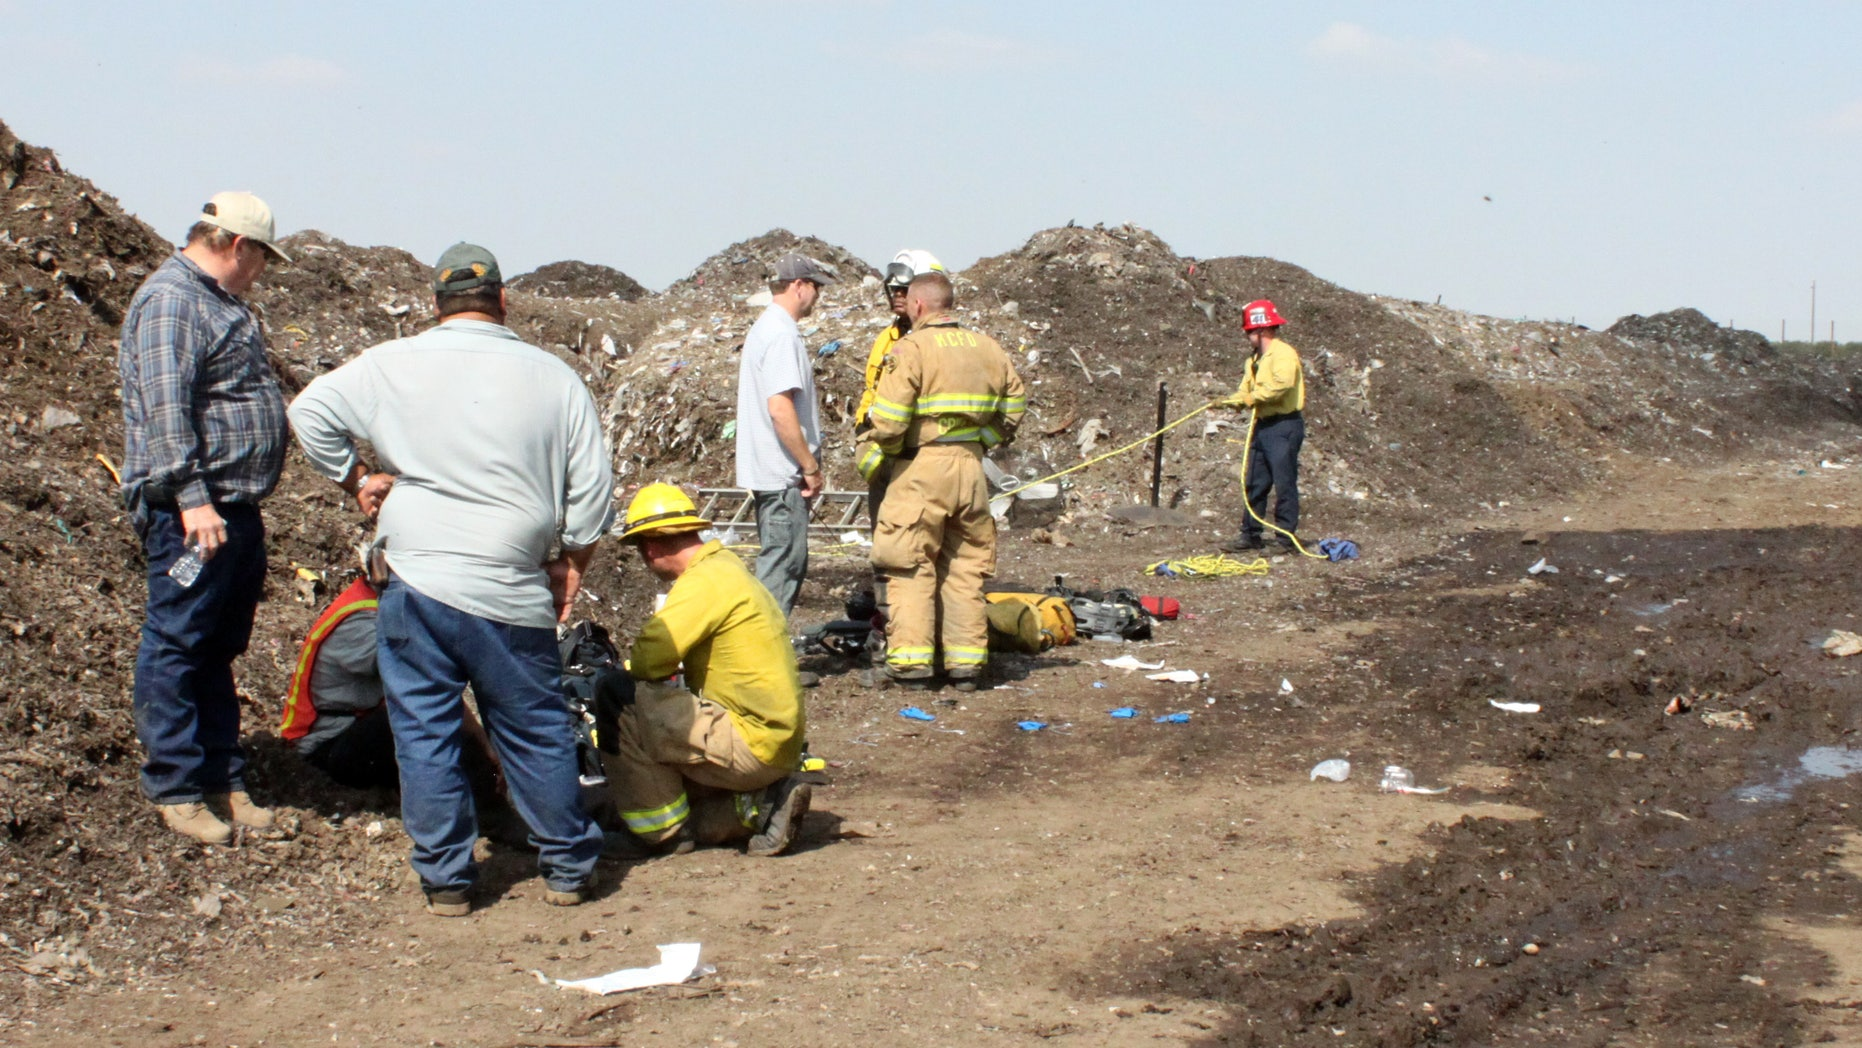 This image provided by the Kern County Sheriff's Department shows rescue personnel at the scene where a teenager was killed and his brother was critically injured in Lamont, Calif., when they were overcome by fumes in a tunnel at the recycling plant where they worked, Kern County officials said Friday Oct.14, 2011. (AP Photo/Kern County (Calif.) Sheriff's Department)